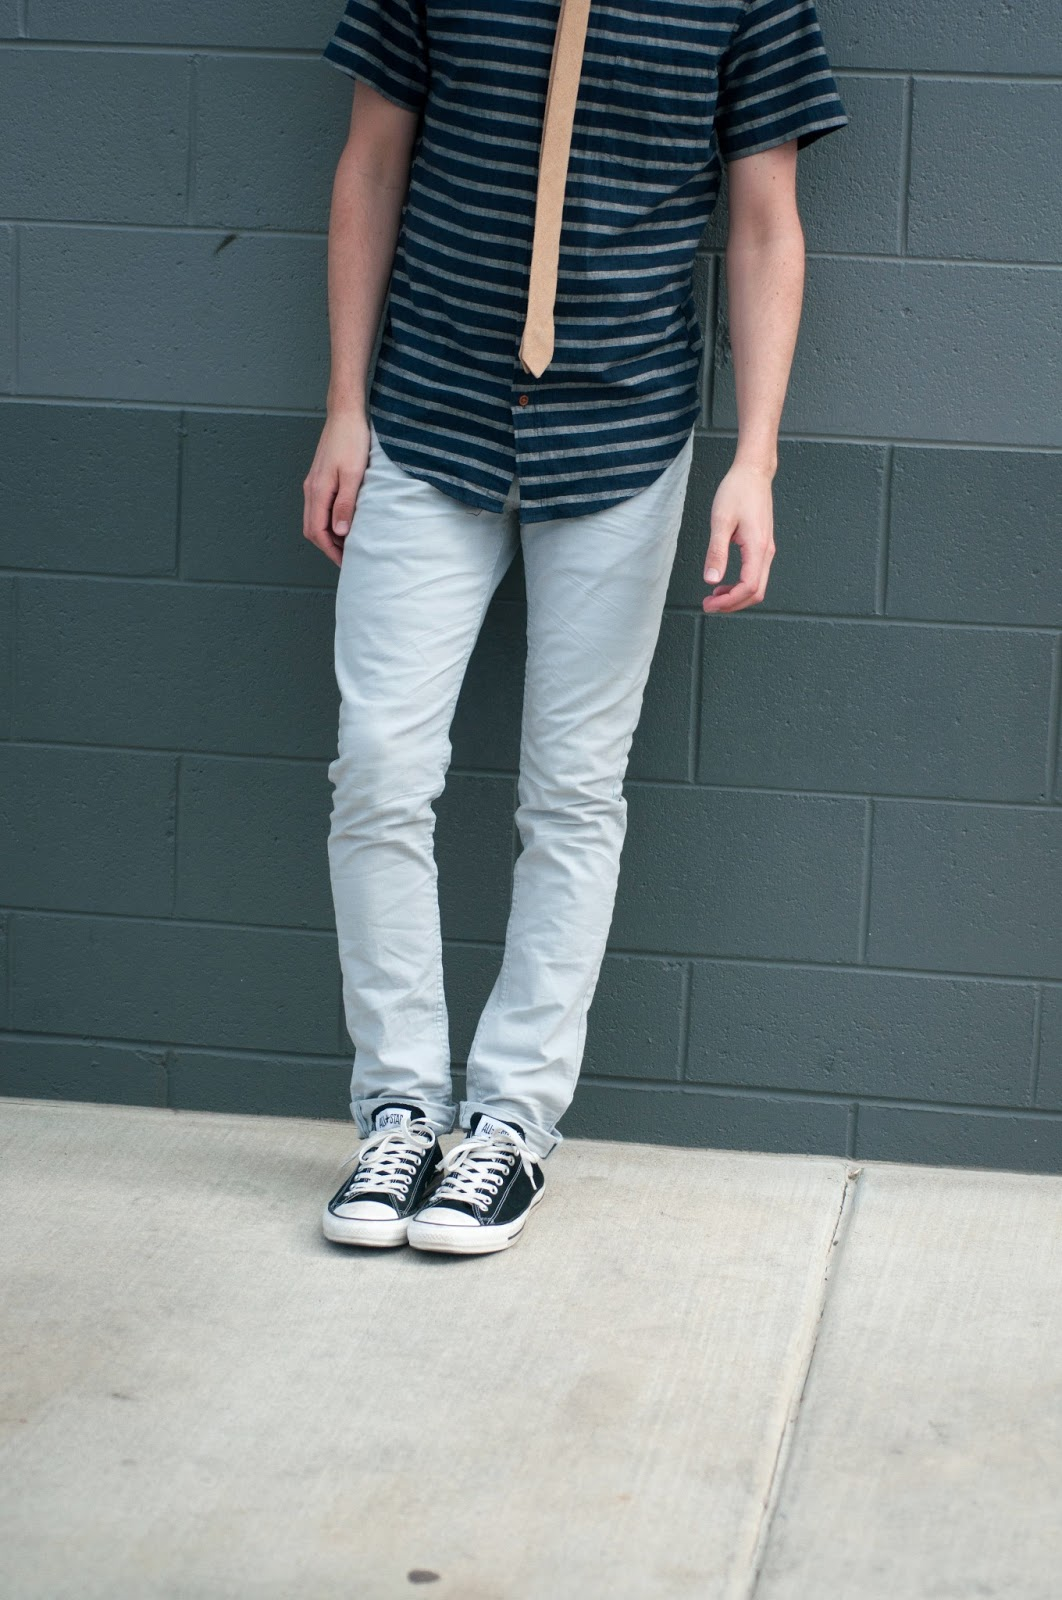 mens fashion blog, mens style blog, converse, all saints, jcrew, ootd, mens fashion